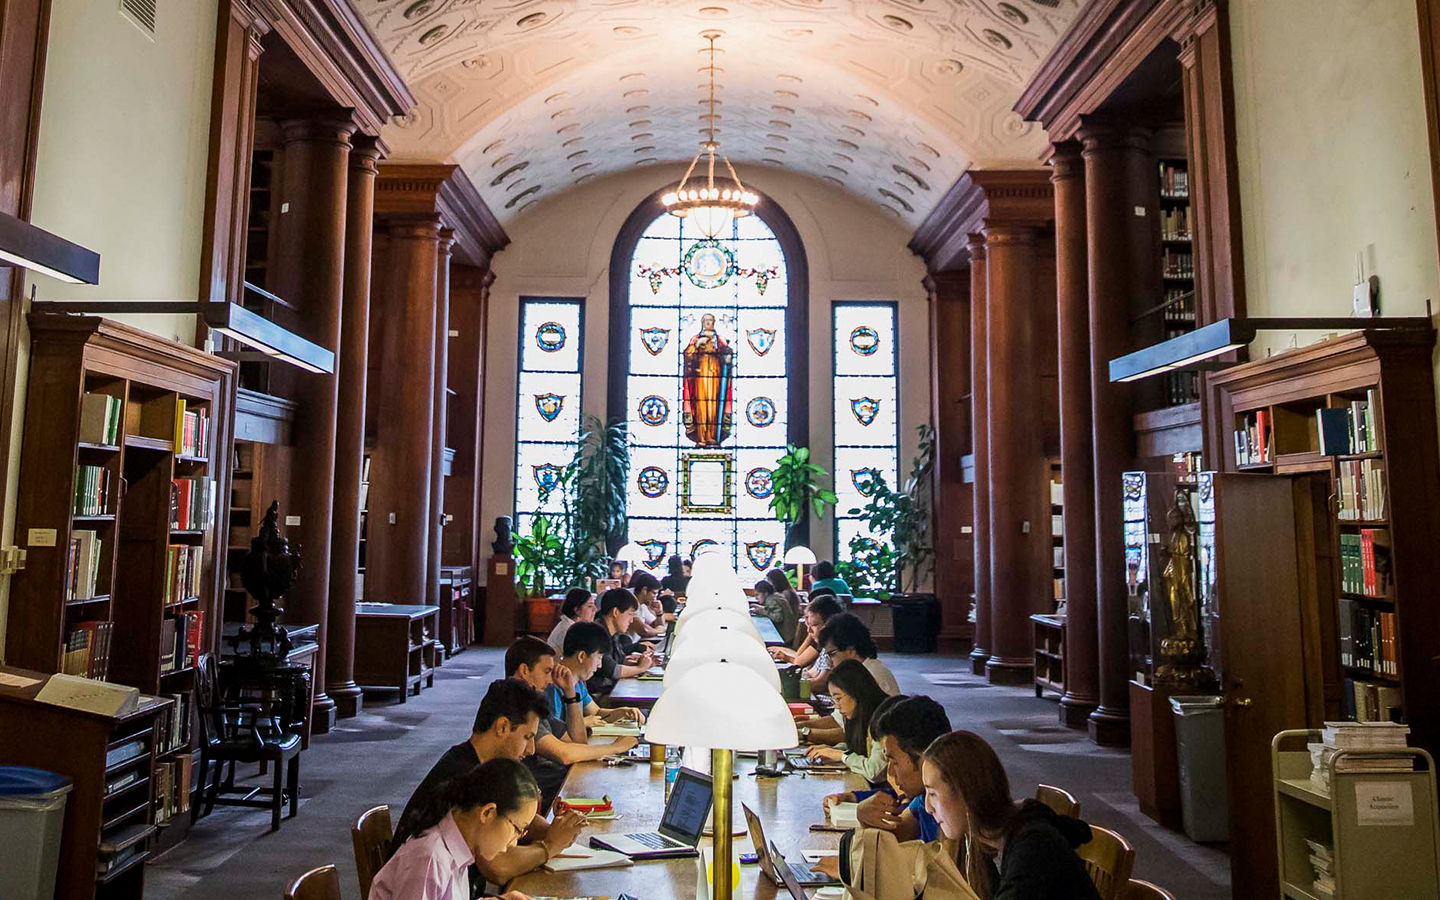 Students studying in Butler library